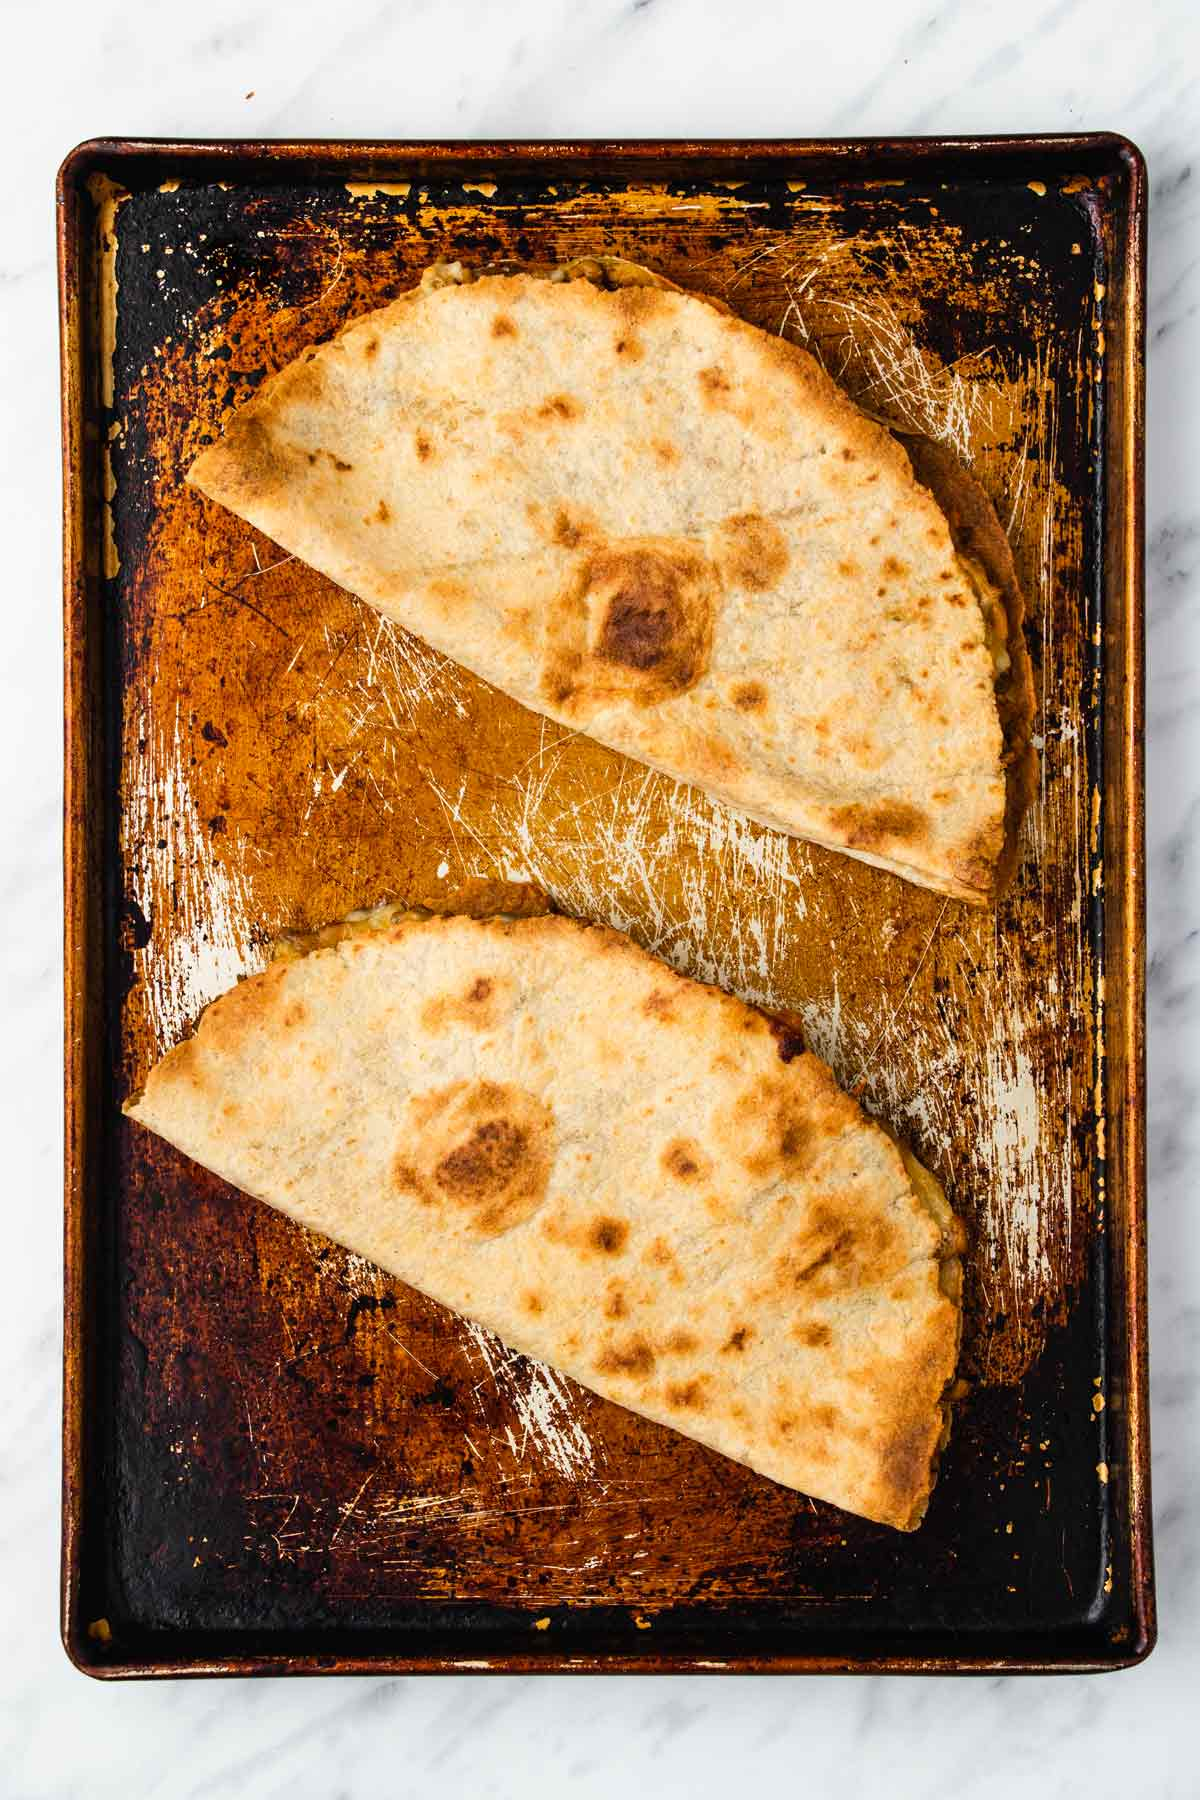 two cooked quesadillas.